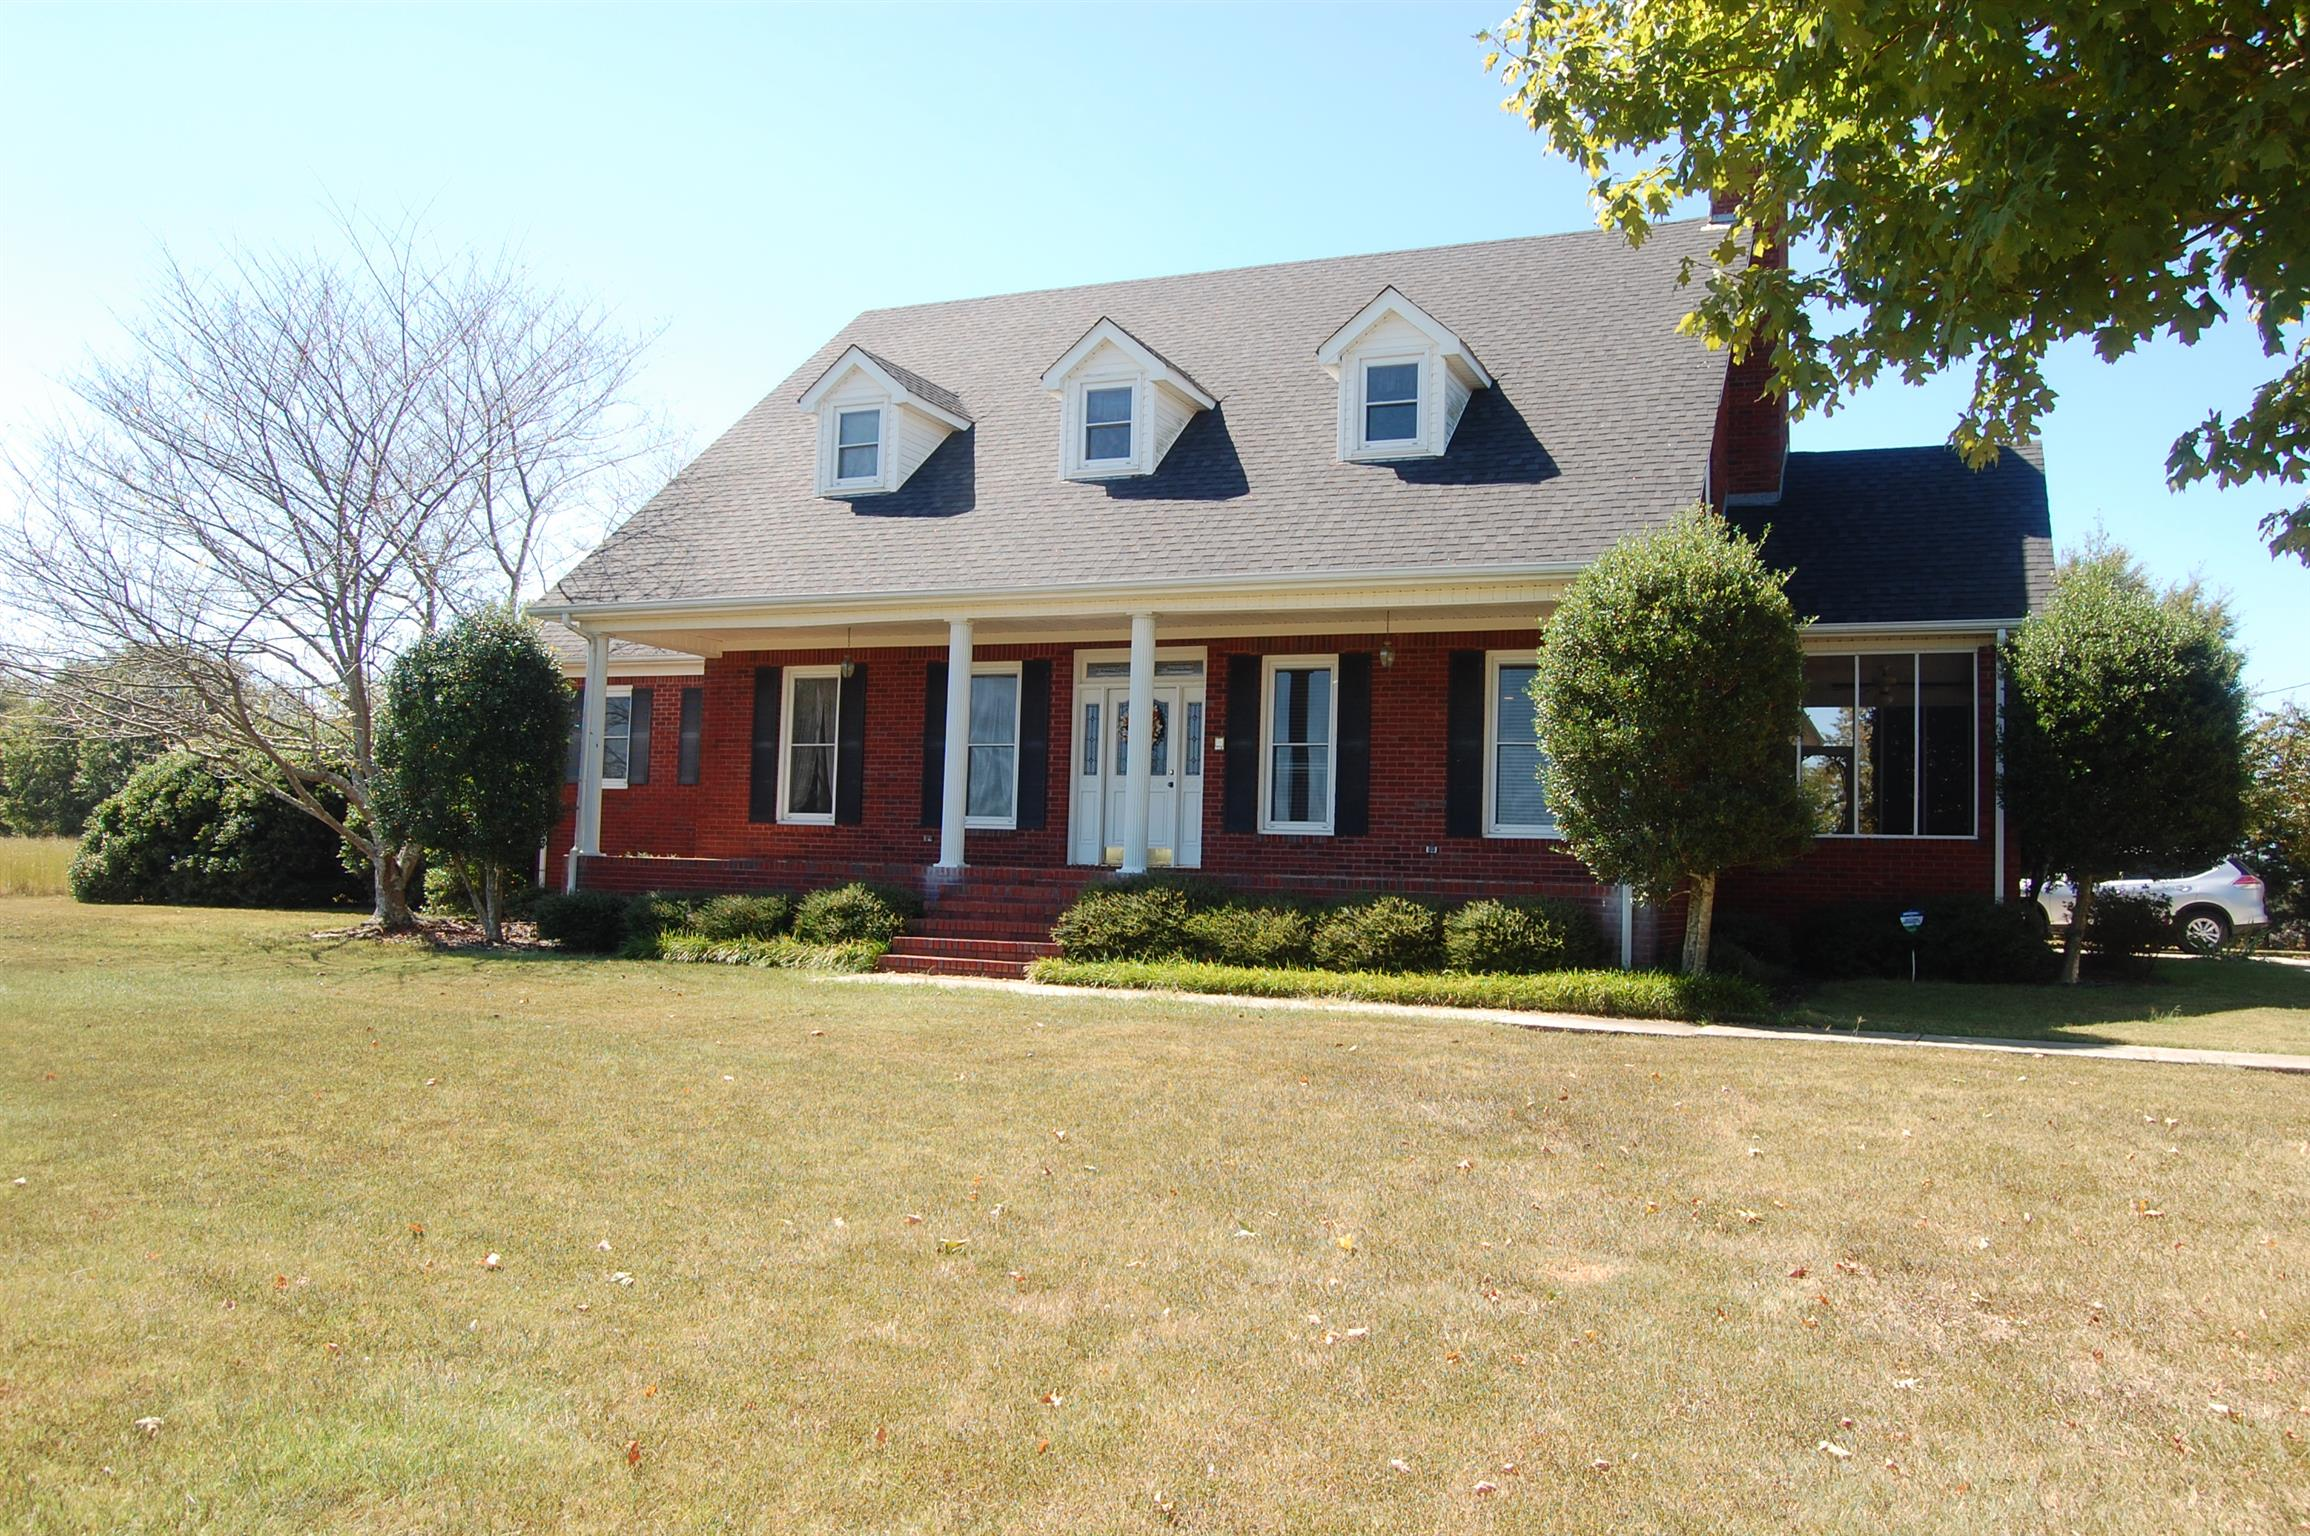 190 Henry Bayless Rd, Ardmore, TN 38449 - Ardmore, TN real estate listing